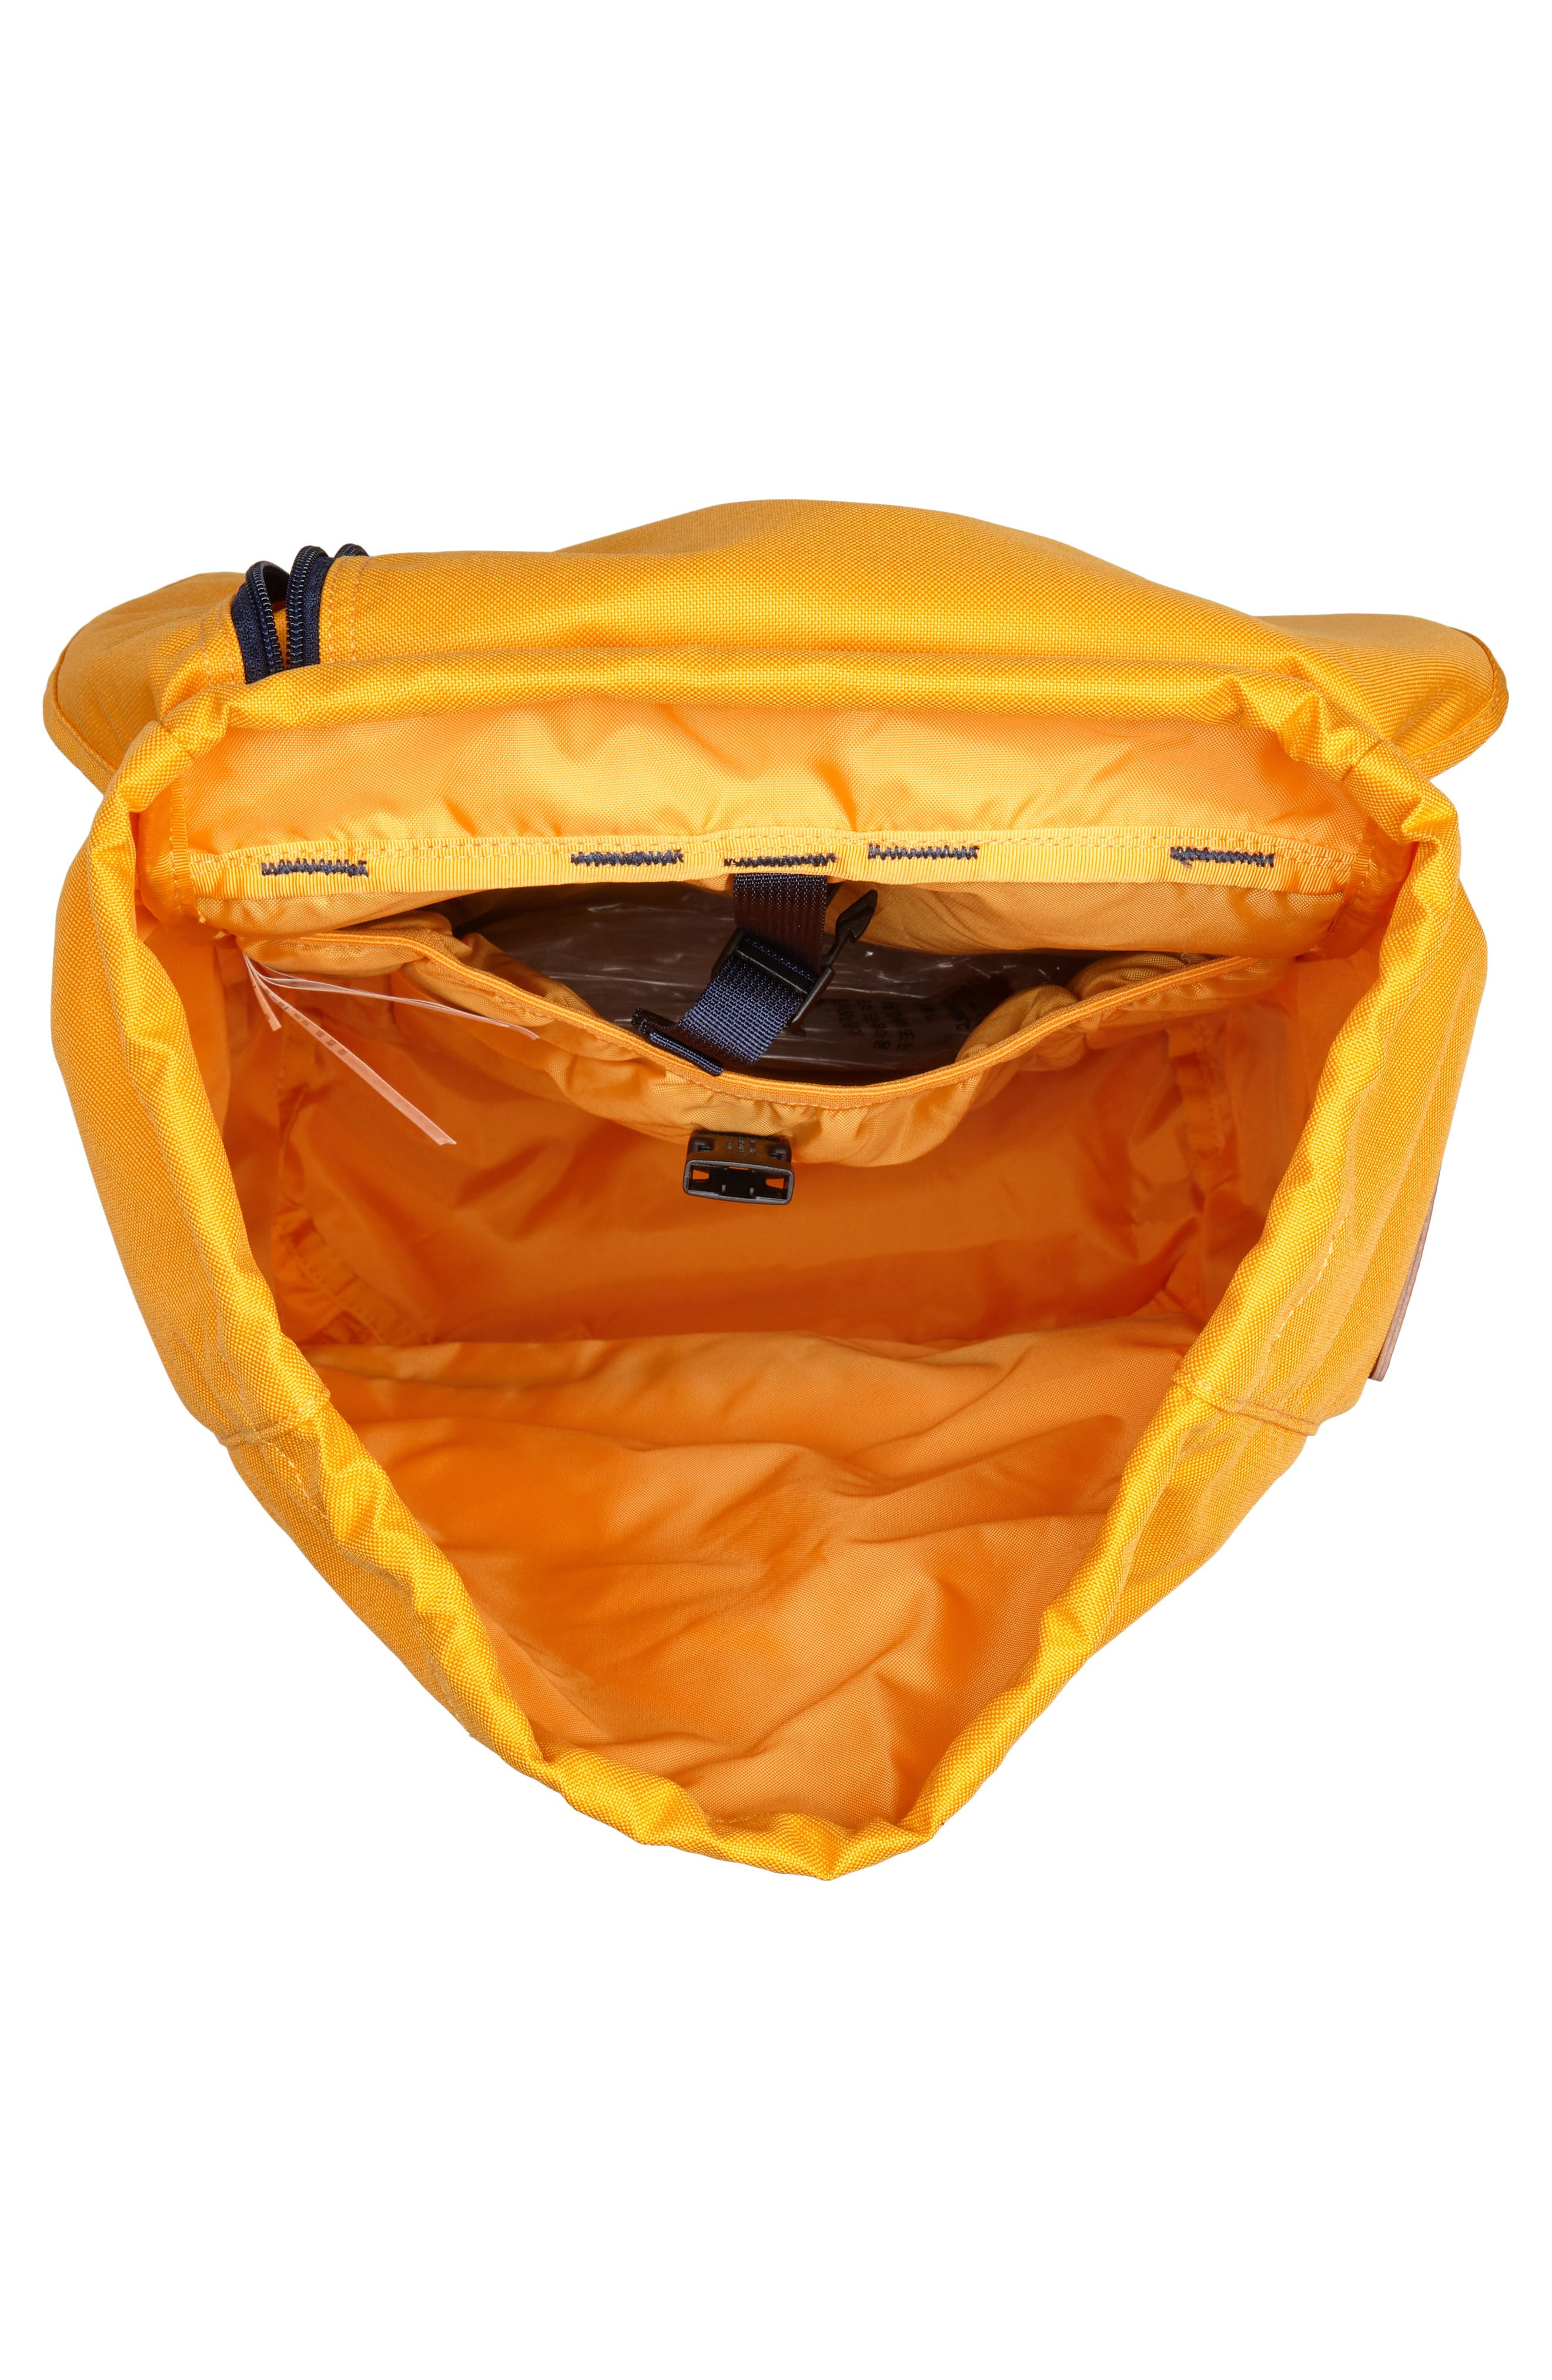 Arbor 26-Liter Backpack,                             Alternate thumbnail 4, color,                             Rugby Yellow